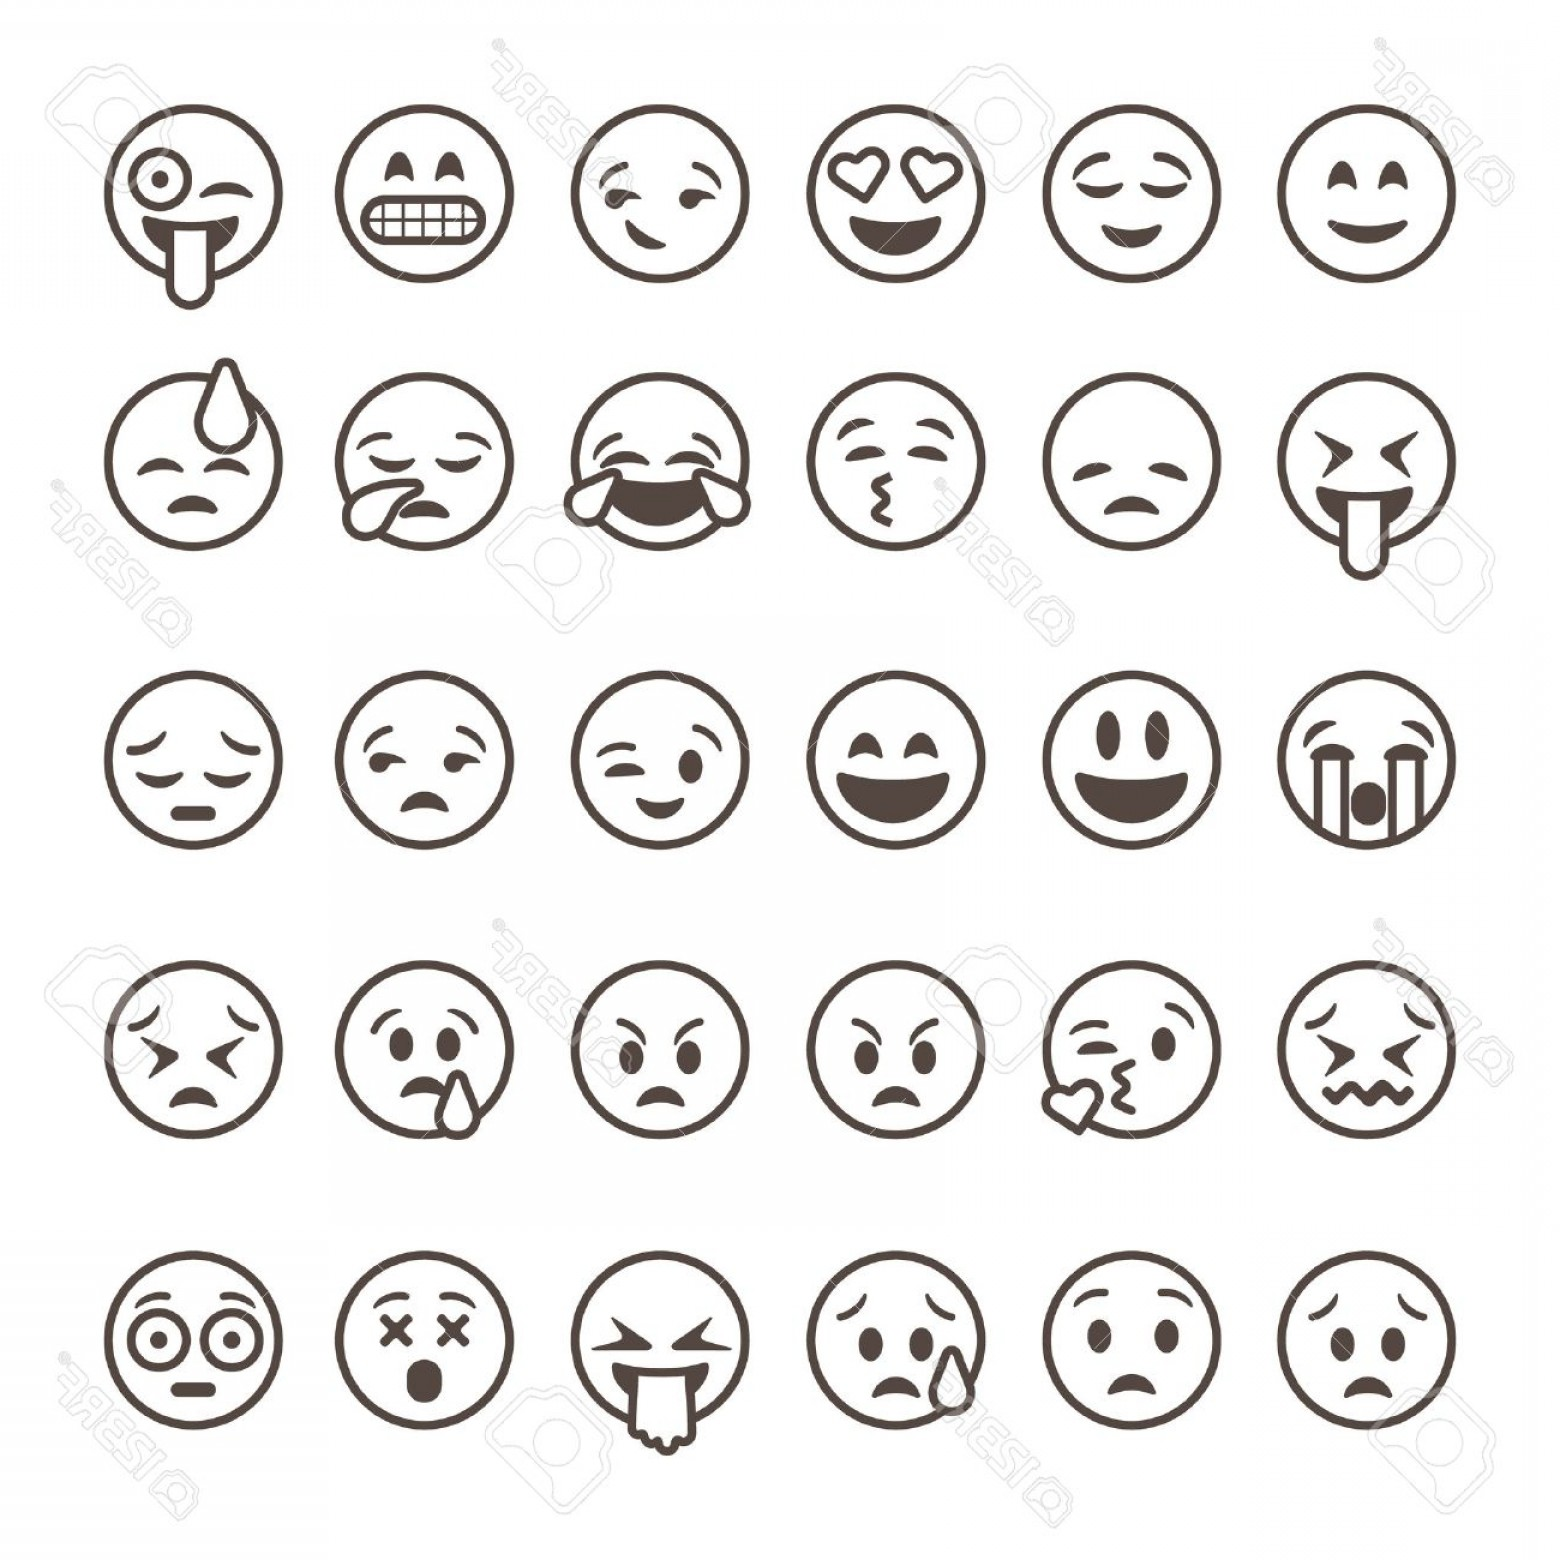 Popular Vector Emoji: Photostock Vector Set Of Outline Emoticons Emoji Isolated On White Background Vector Illustration